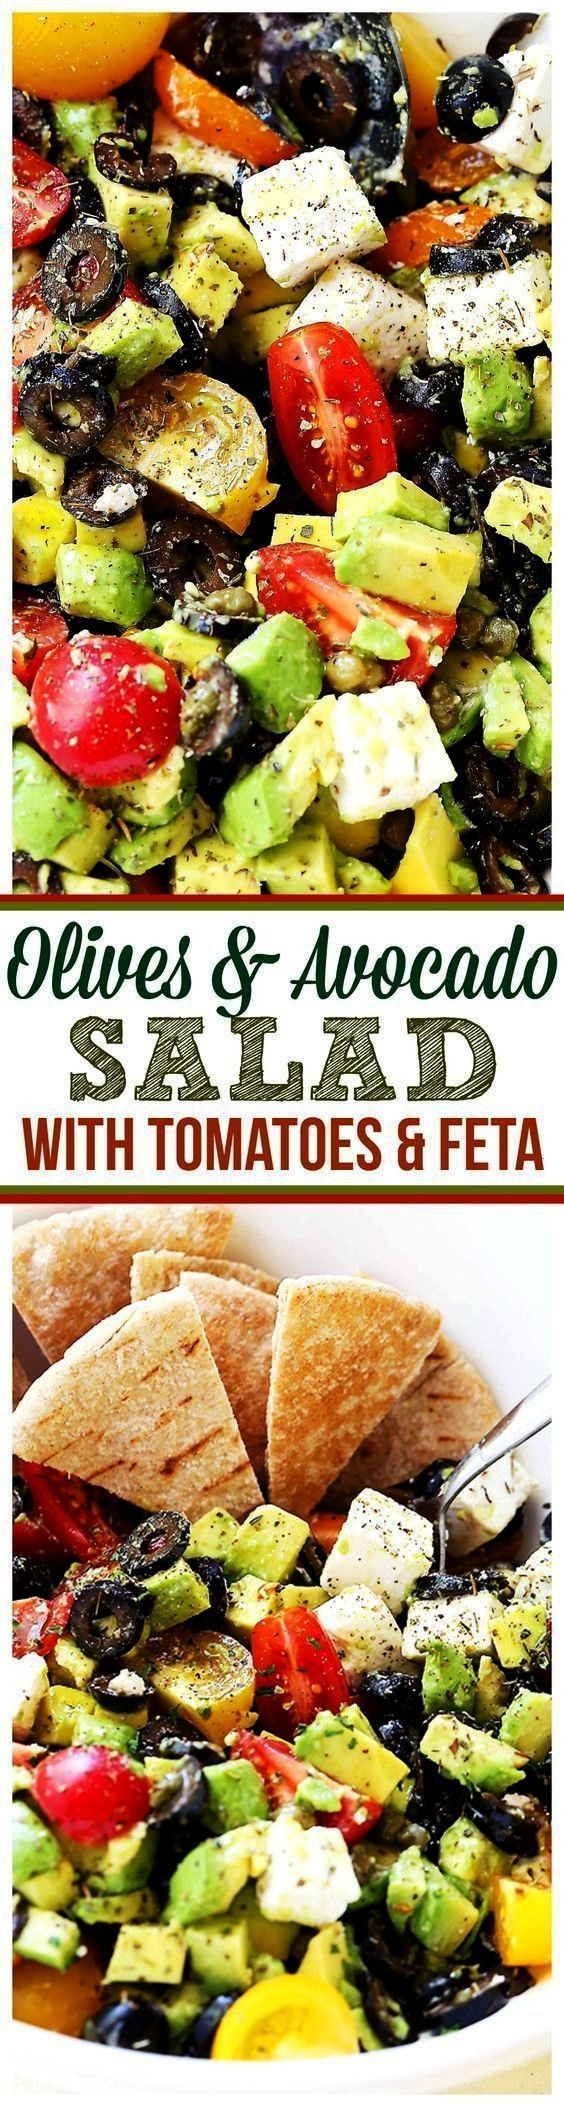 and Avocado Salad with Tomatoes and Feta Cheese - Delicious, colorful and summery avocado salad wit